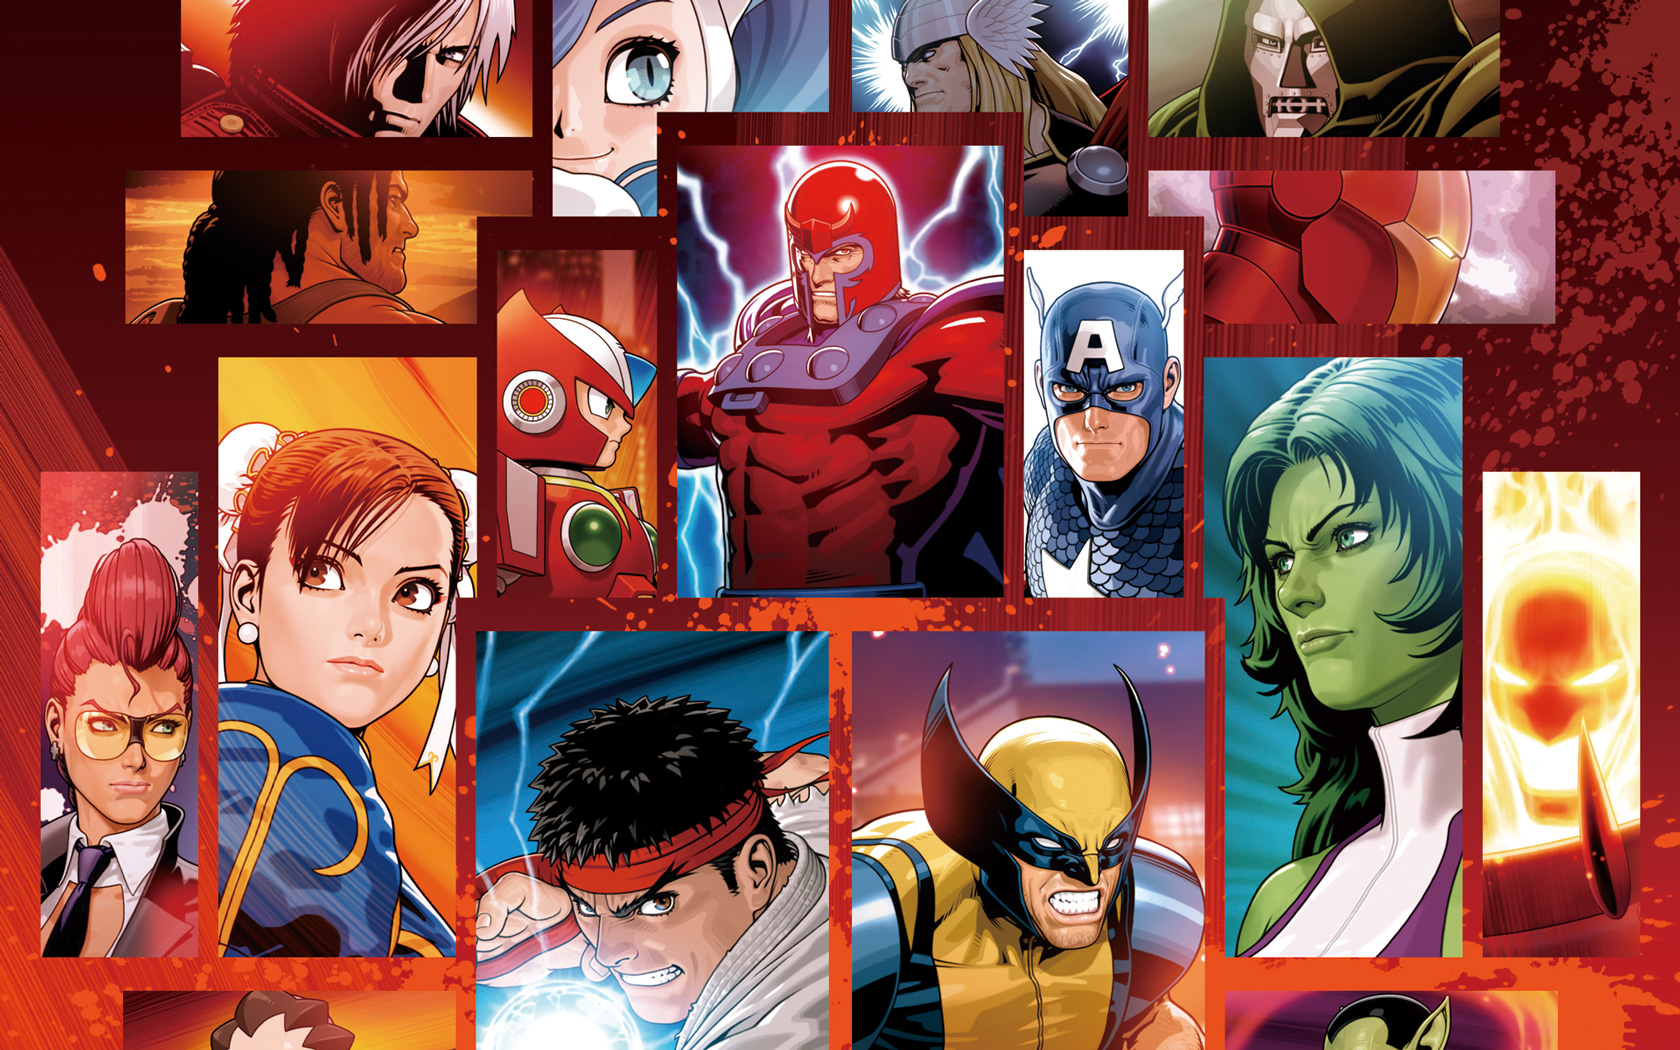 Marvel vs. Capcom 3: Fate of Two Worlds Wallpaper in 1680x1050